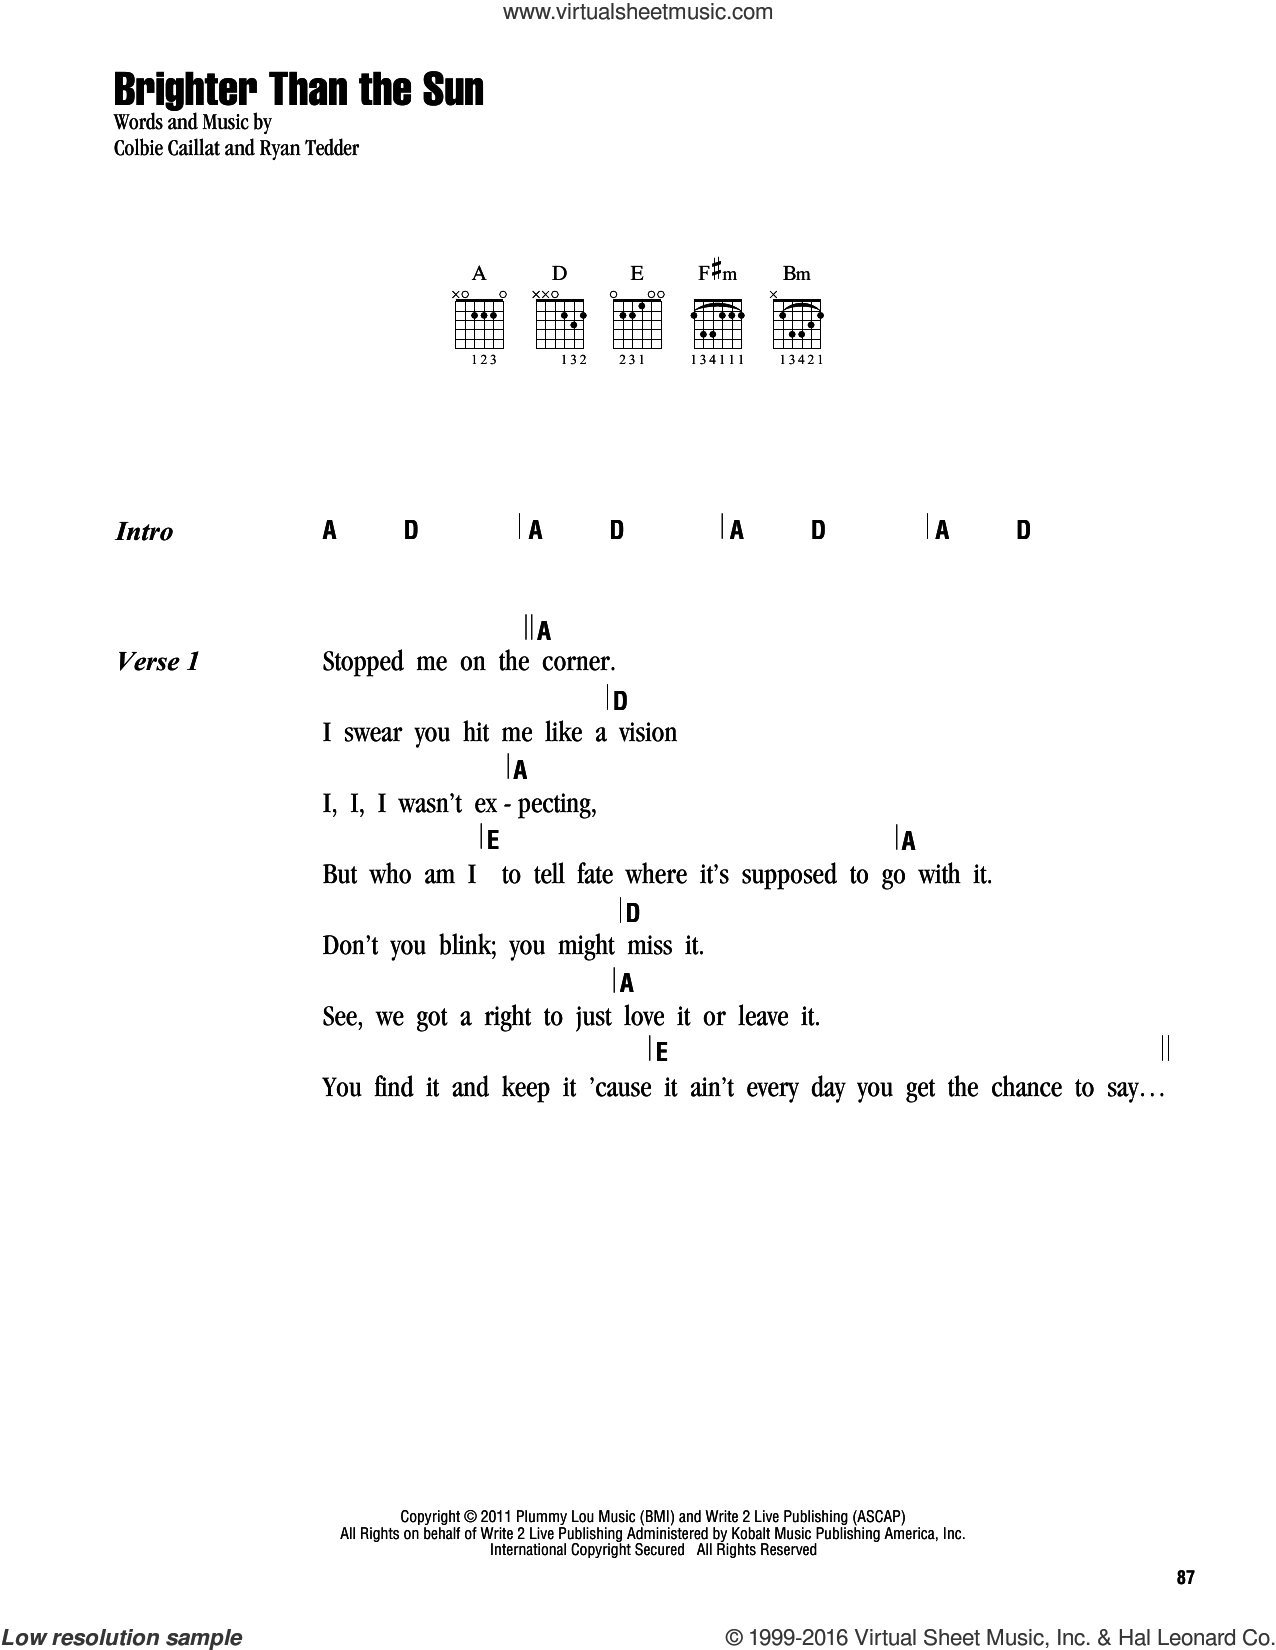 Brighter Than The Sun sheet music for guitar (chords) by Colbie Caillat and Ryan Tedder, intermediate skill level